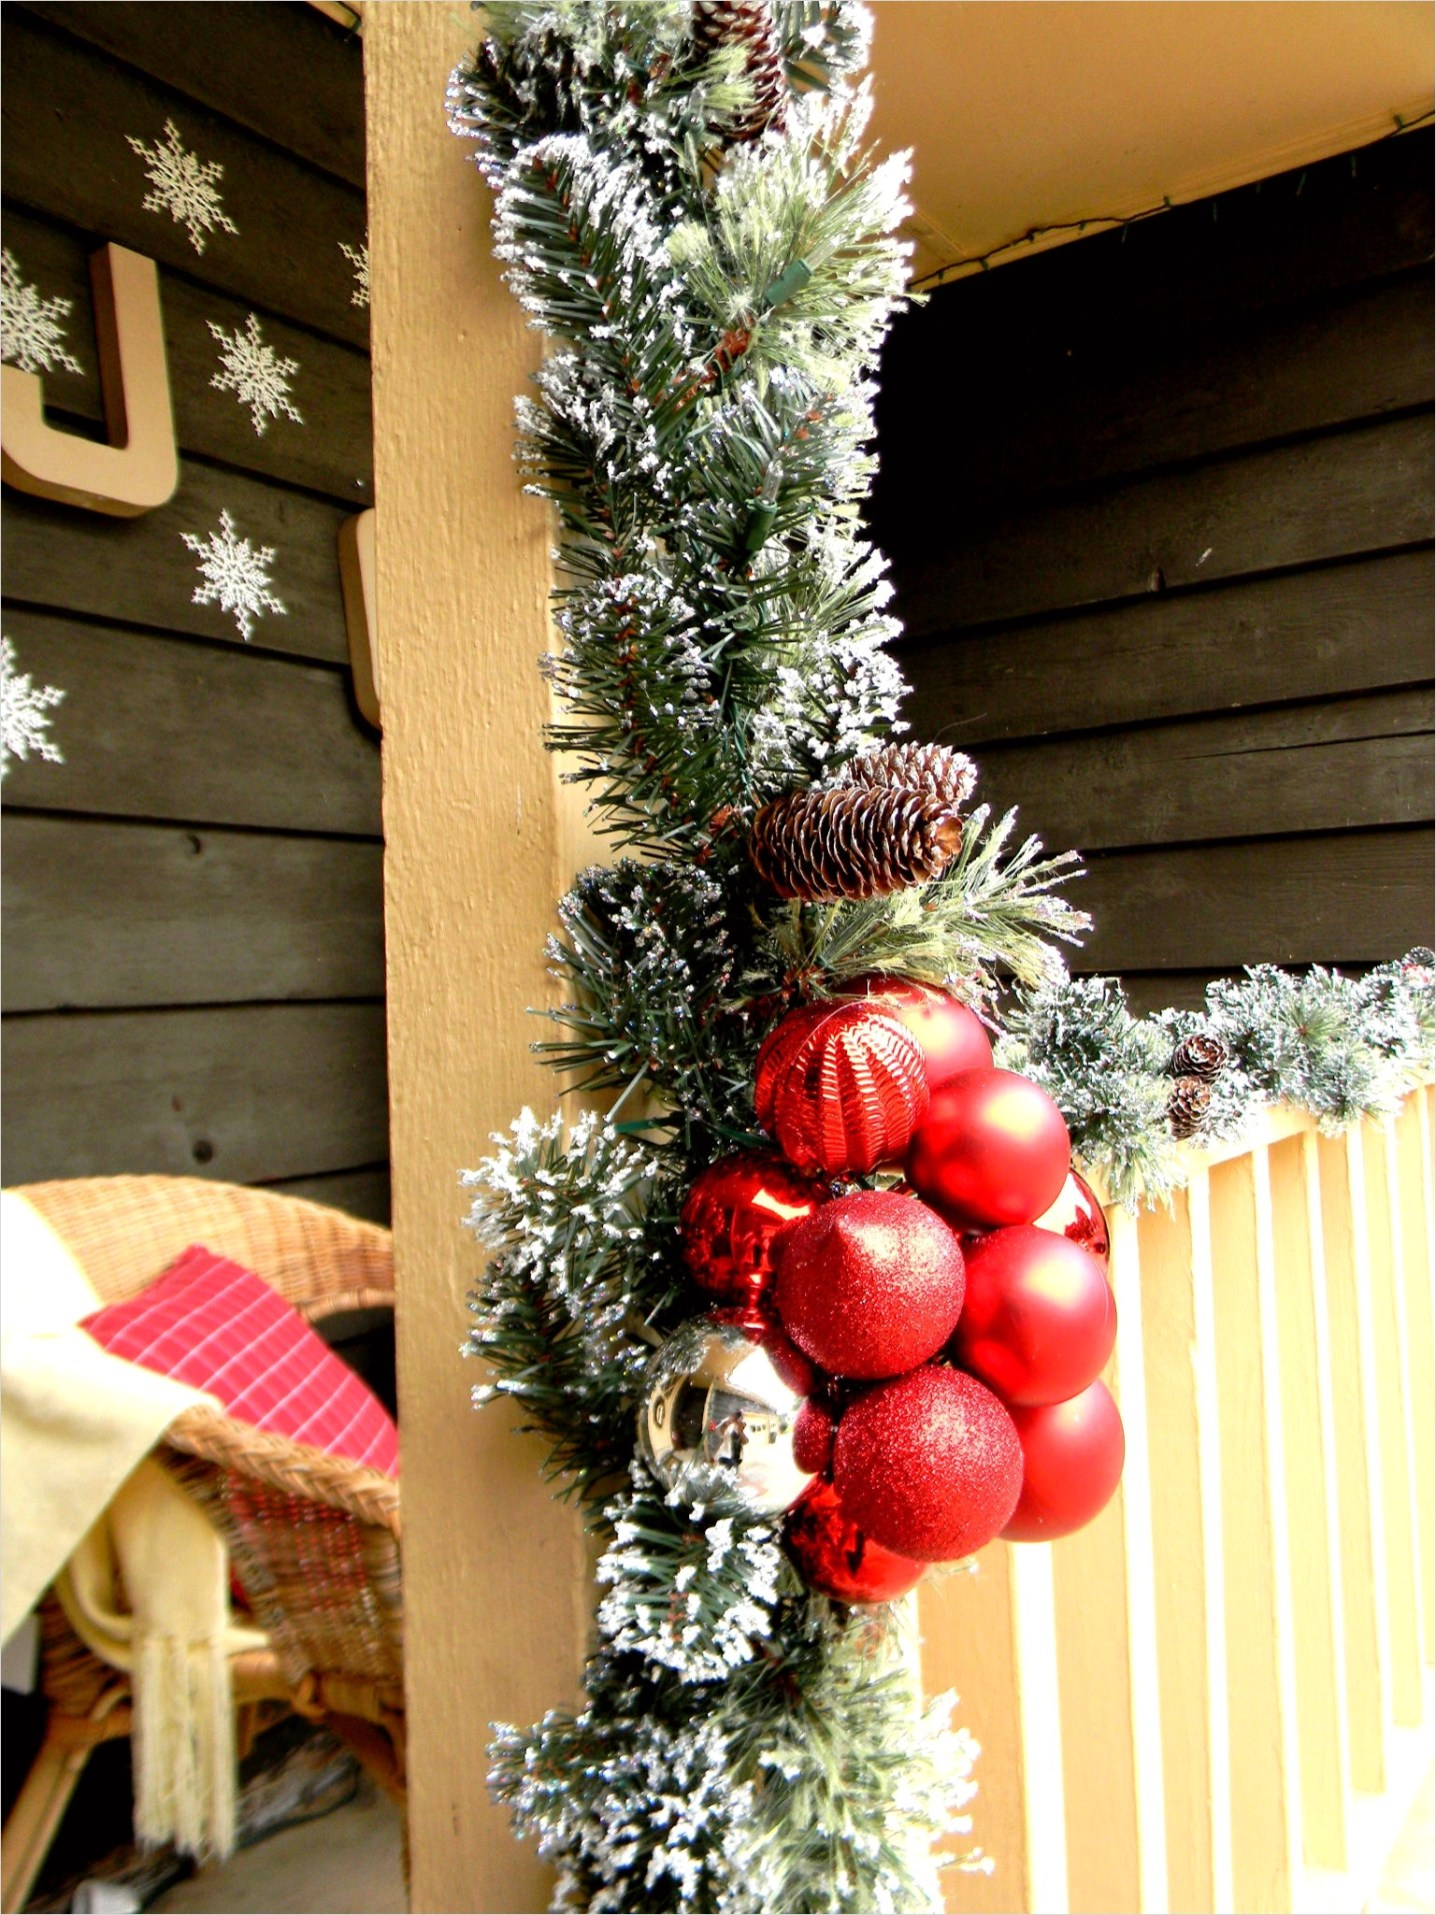 42 Stunning Country Christmas Centerpieces Ideas Ideas 71 Front Porch Christmas Decorating Ideas Country Christmas 7